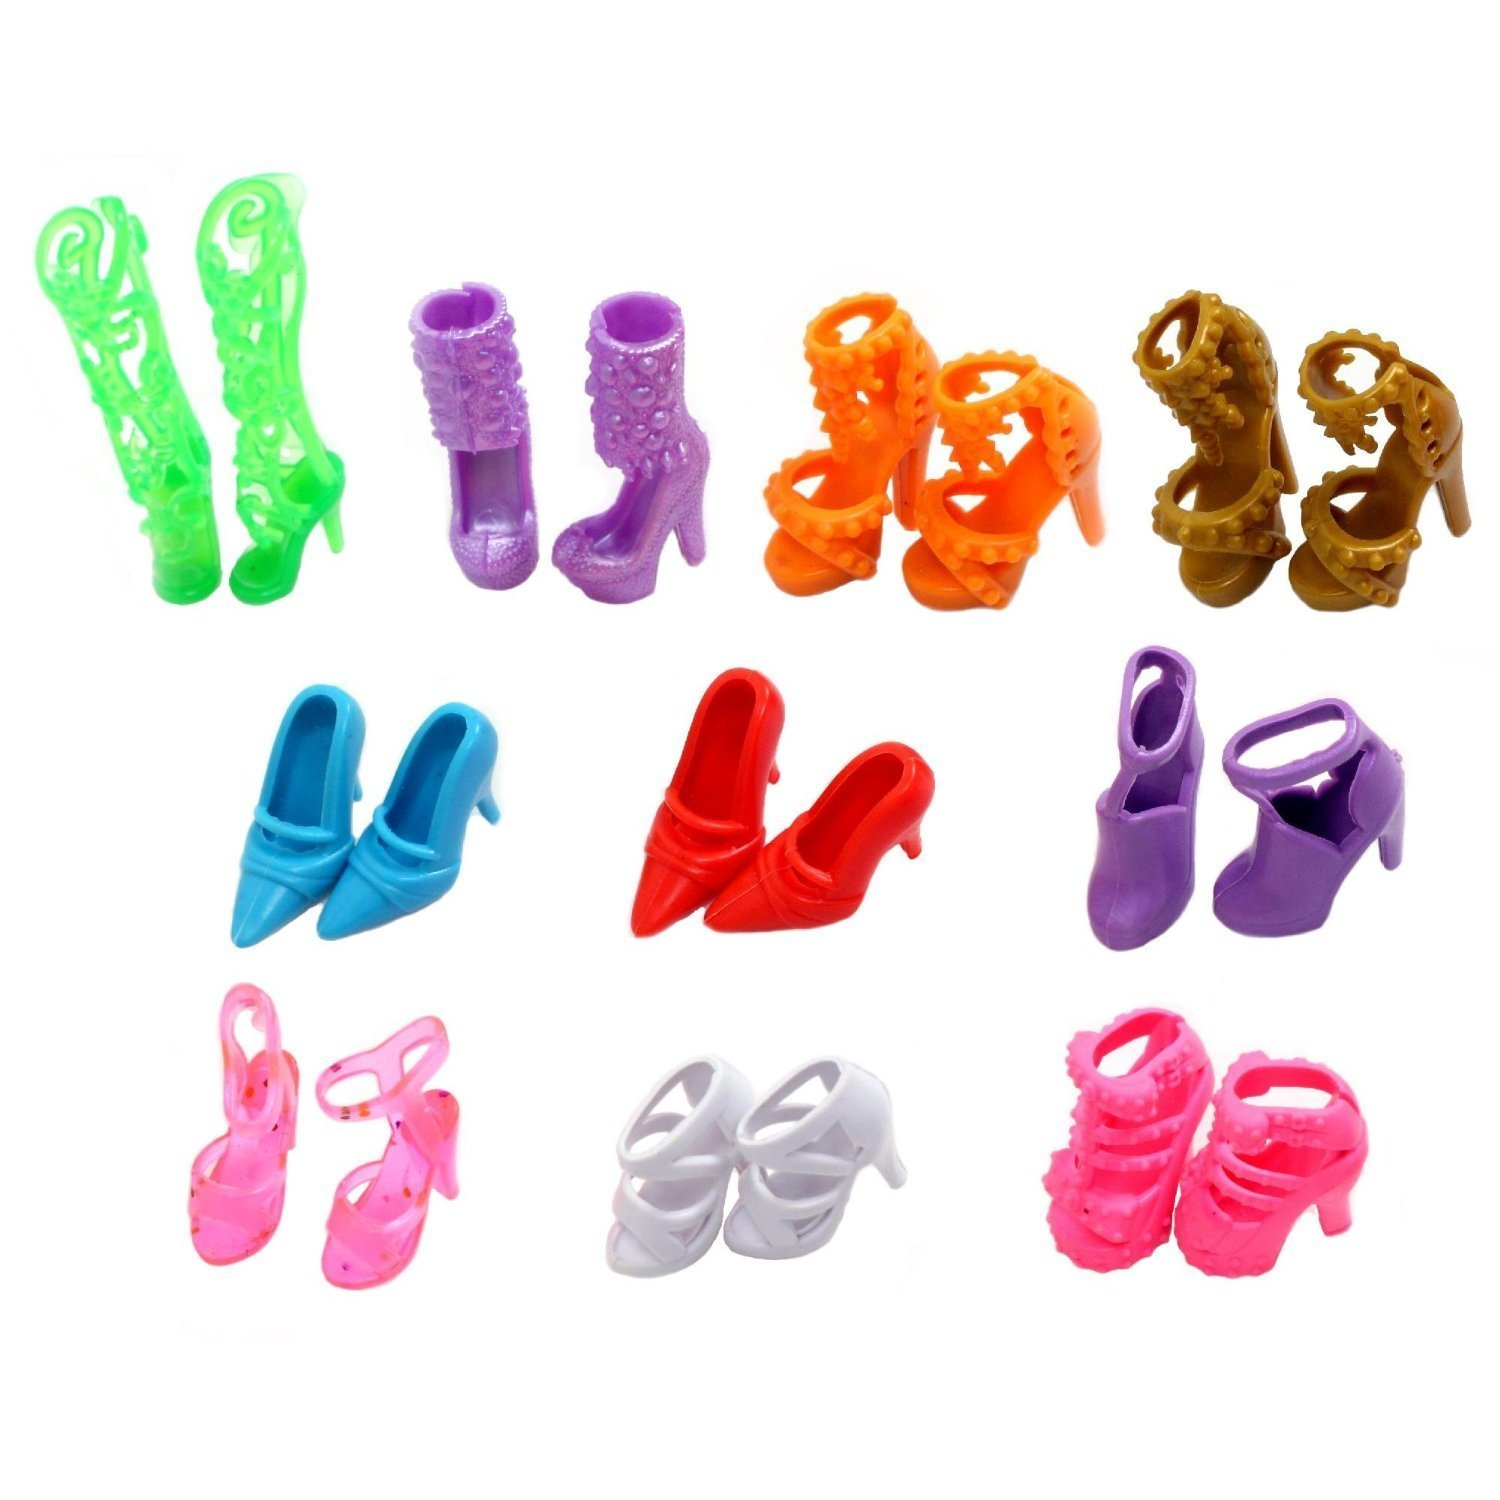 Urparcel 10 Pairs of Doll Shoes, Fit Barbie Dolls SG-E80G-X449